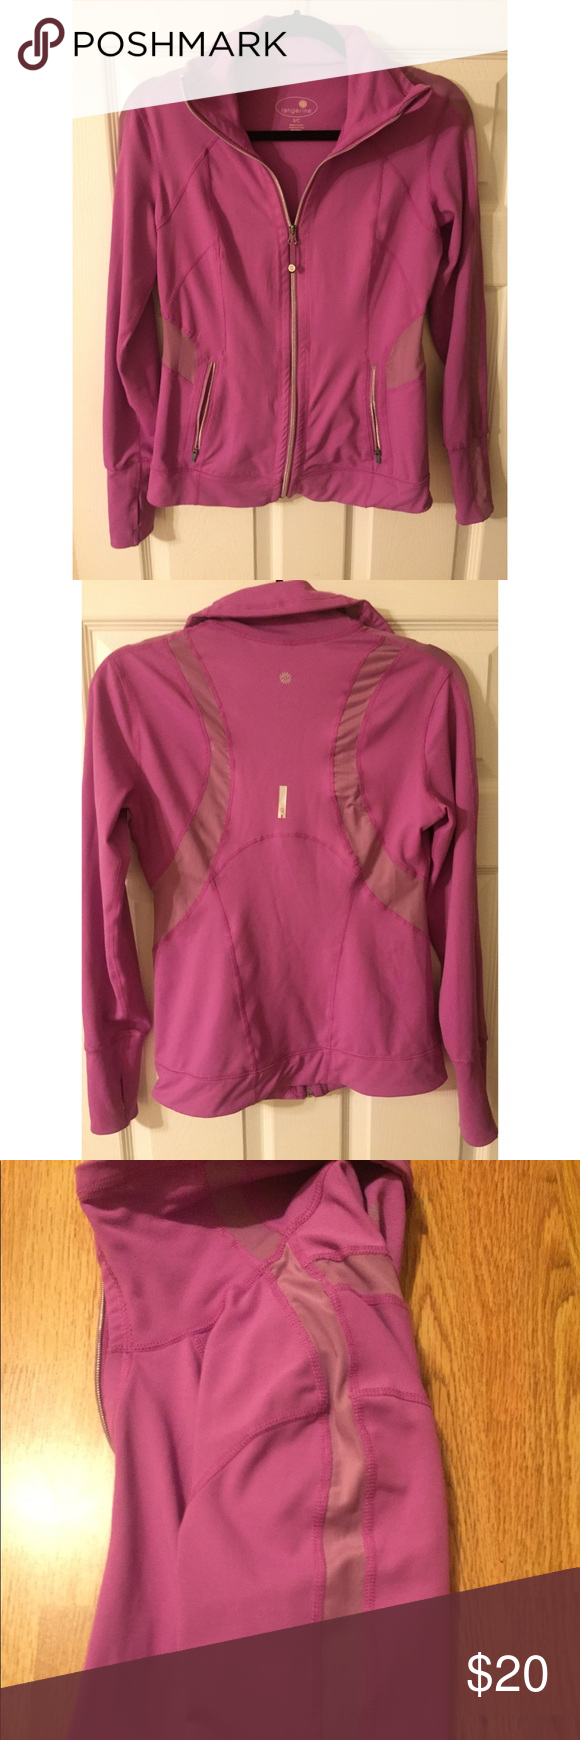 NWOT Tangerine purple mesh zip up athletic jacket Tangerine light purple zip up athletic jacket with mesh panels and thumb holes. Zippered pockets. New without tags. lululemon athletica Jackets & Coats